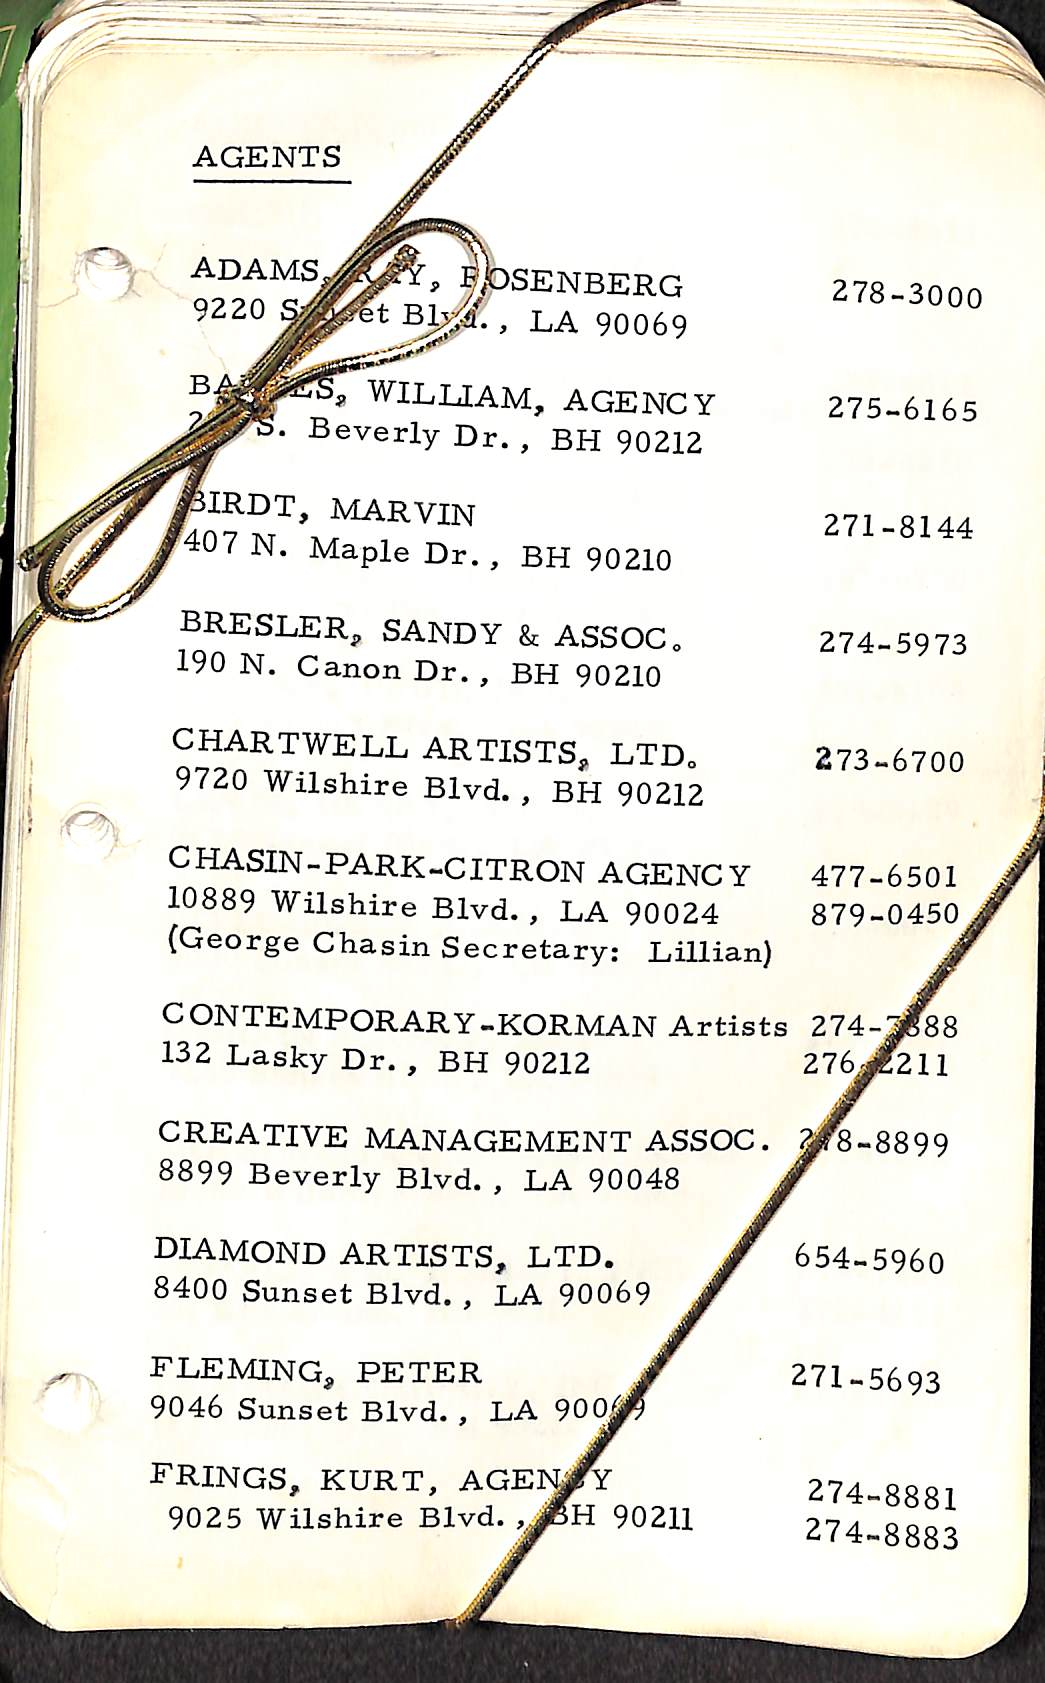 Hollywood Agent's c1960s Phone Directory/ Who's-Who Hollywood Address Book